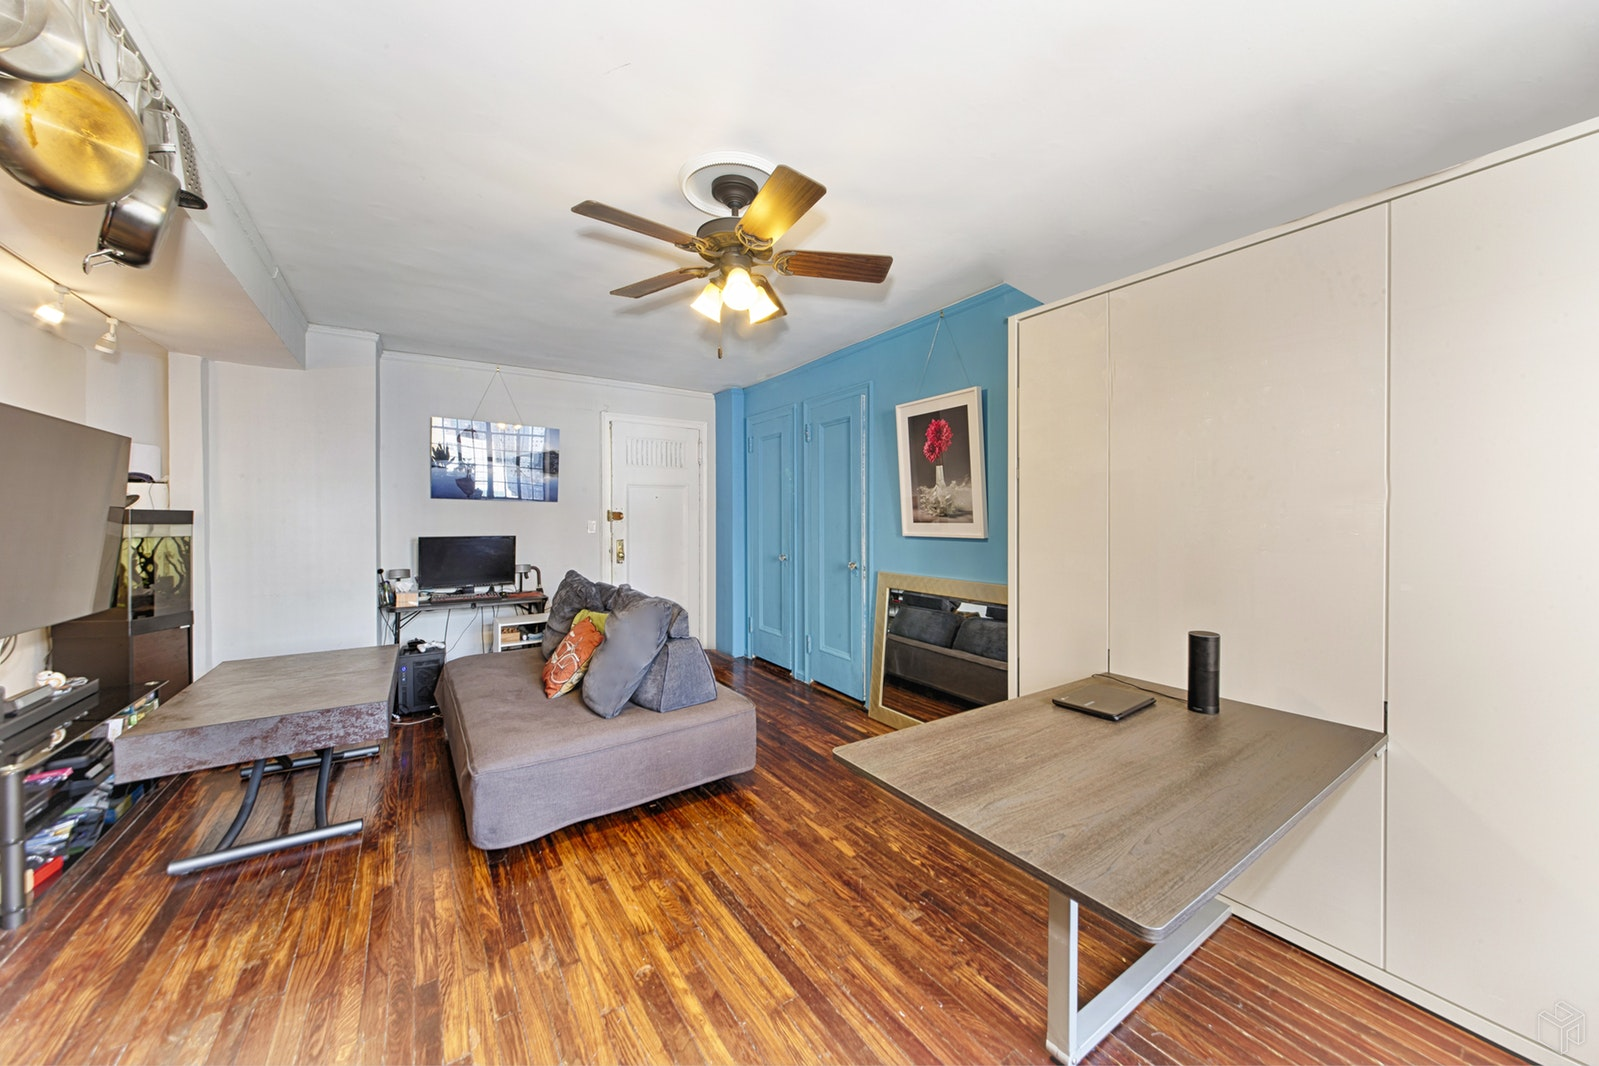 45 Tudor City Place 2114, Murray Hill Kips Bay, NYC, 10017, $385,000, Property For Sale, Halstead Real Estate, Photo 4